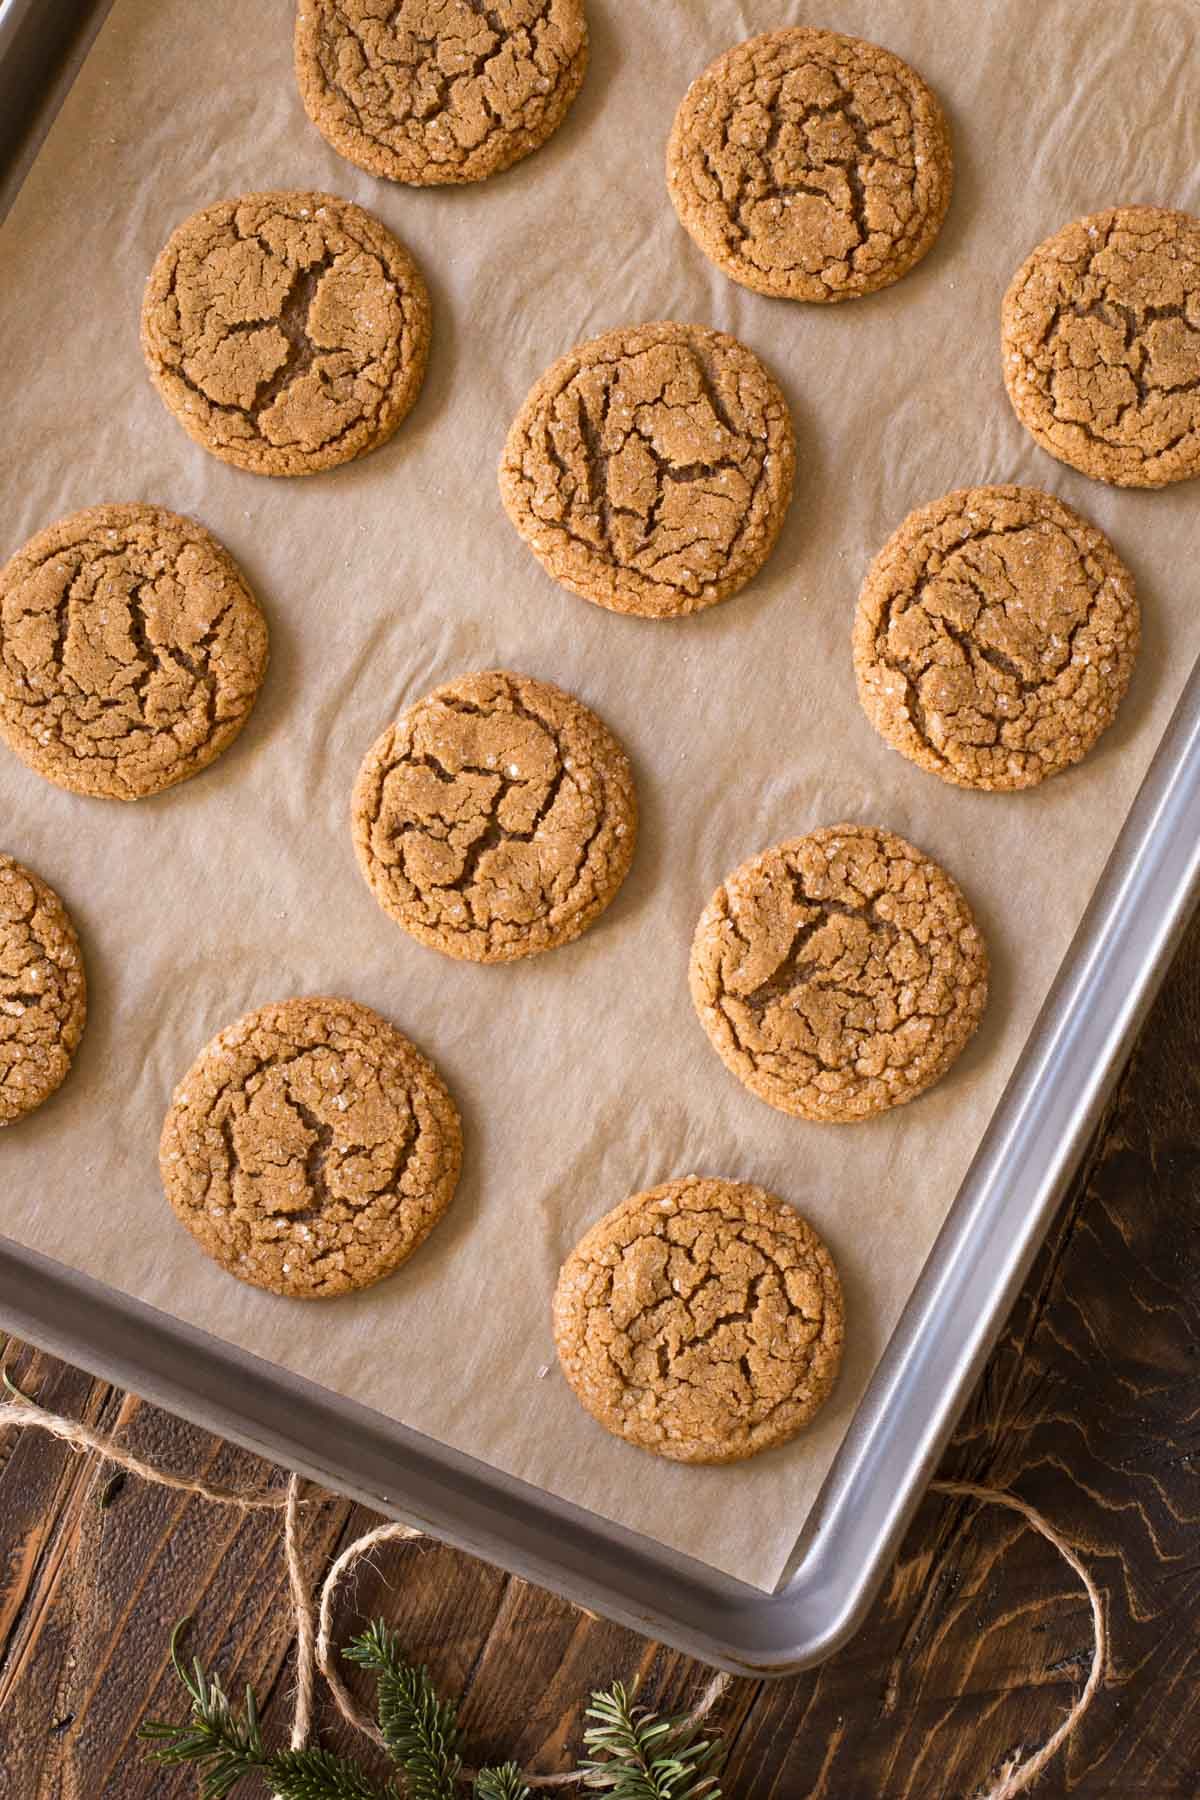 Old Fashioned Ginger Snaps on a parchment paper lined baking sheet.